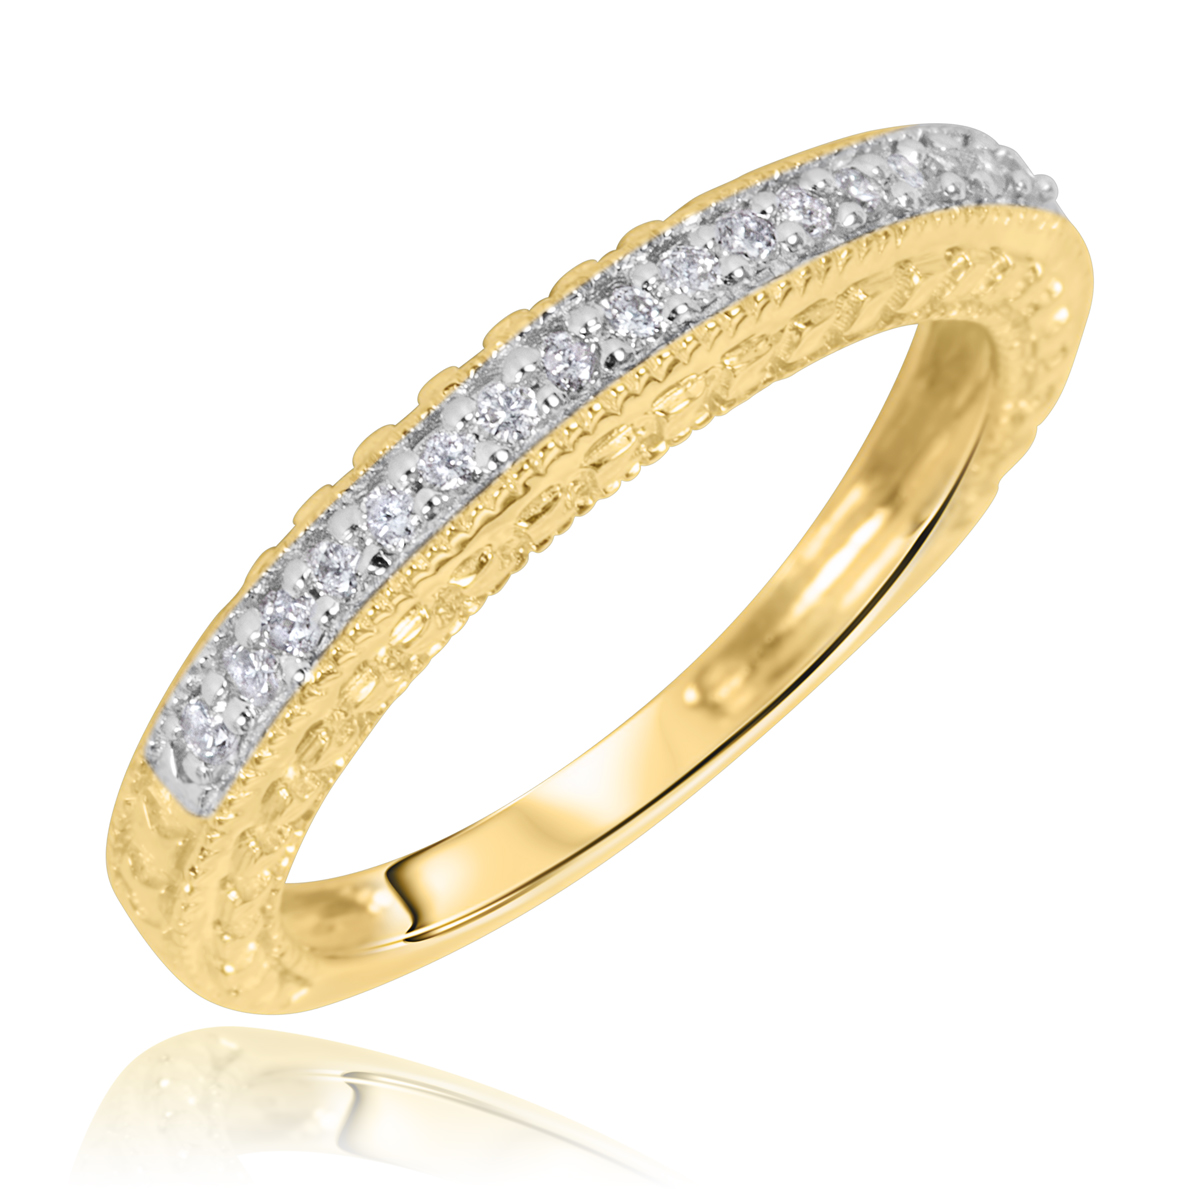 wedding rings sets for him and her cheap inexpensive wedding ring sets Wedding rings sets for him and her cheap Gallery Of Cheap Wedding Rings Sets For